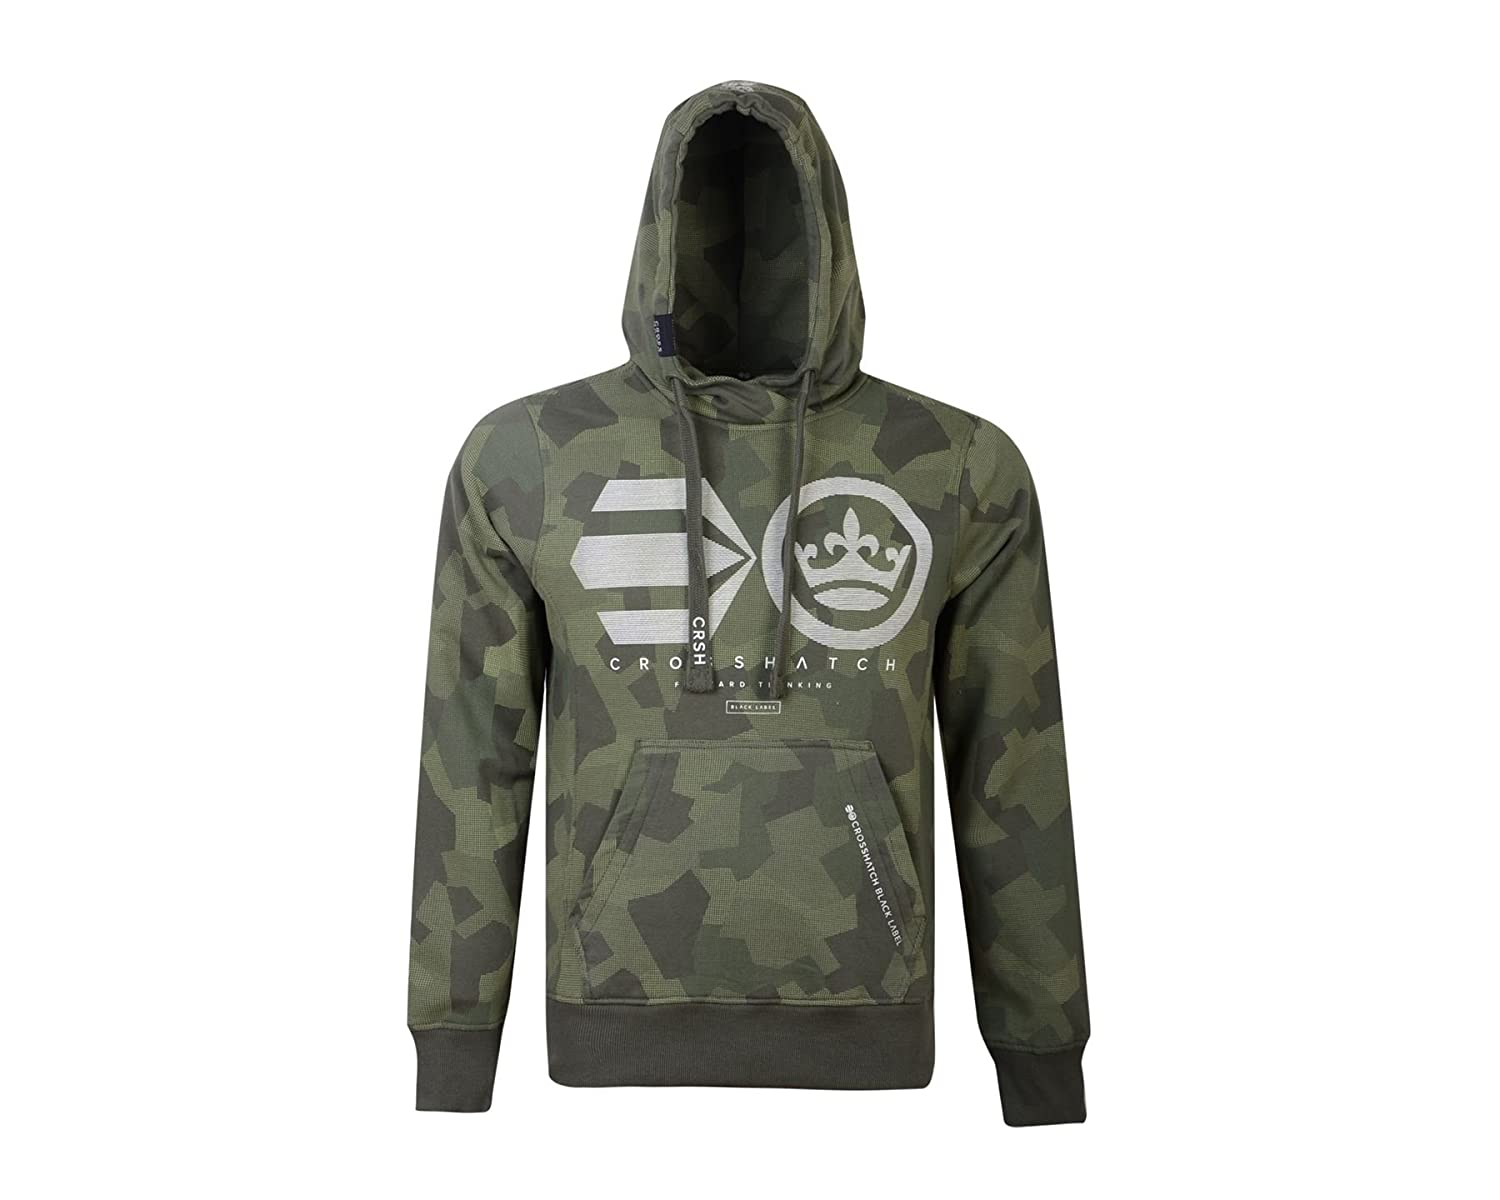 Mens Hoodie Crosshatch Logocamo Cotton Hooded Pull Over Sweater